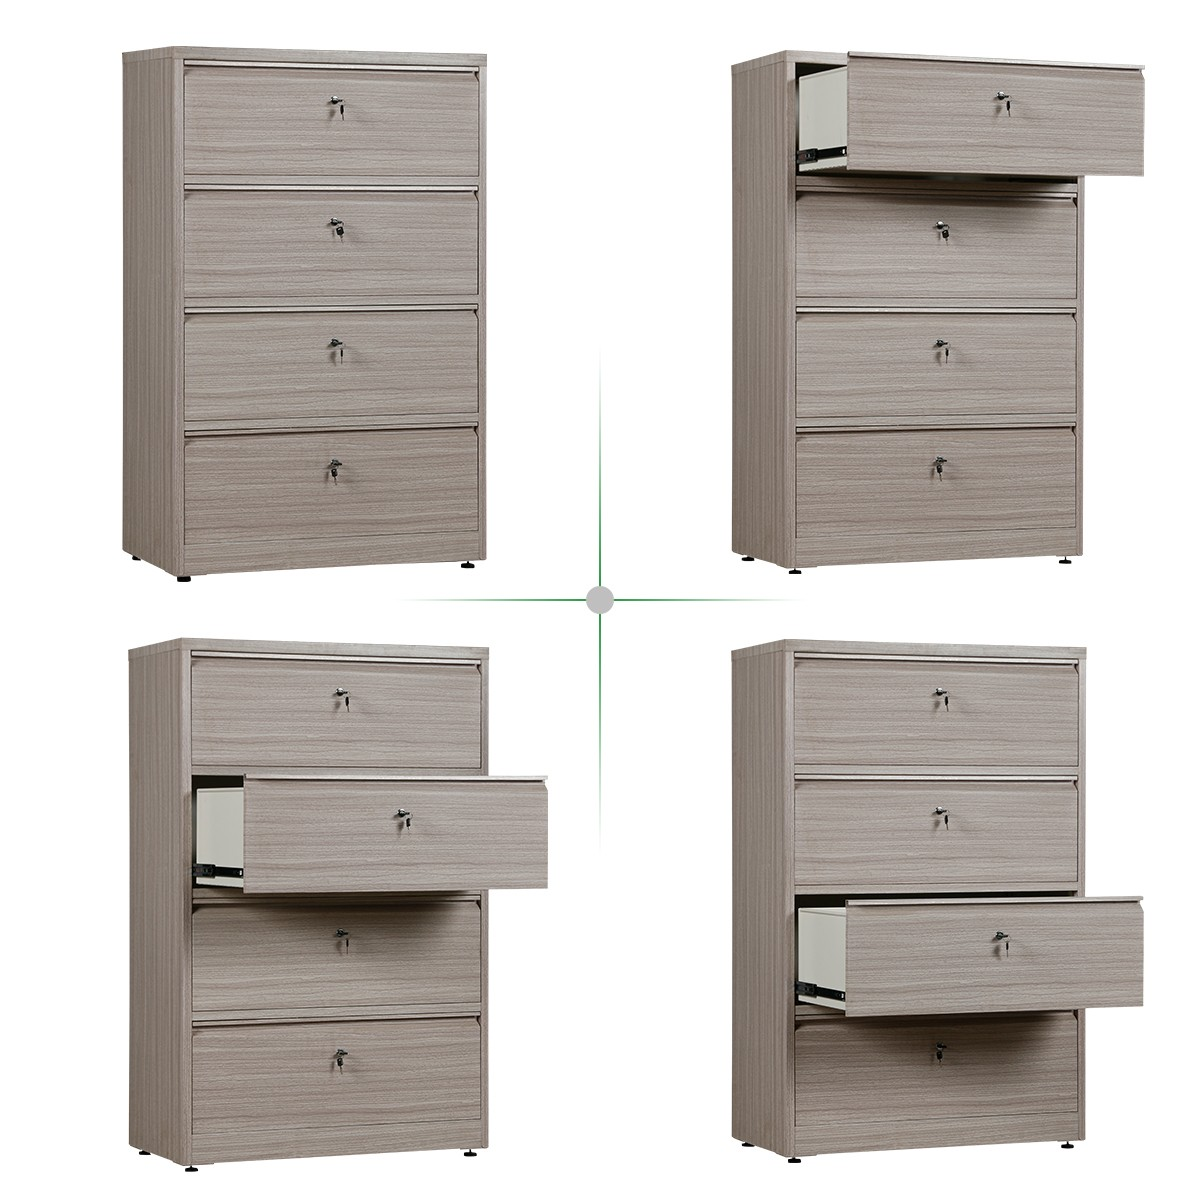 Lateral 4 Drawer Cabinet 1.jpg